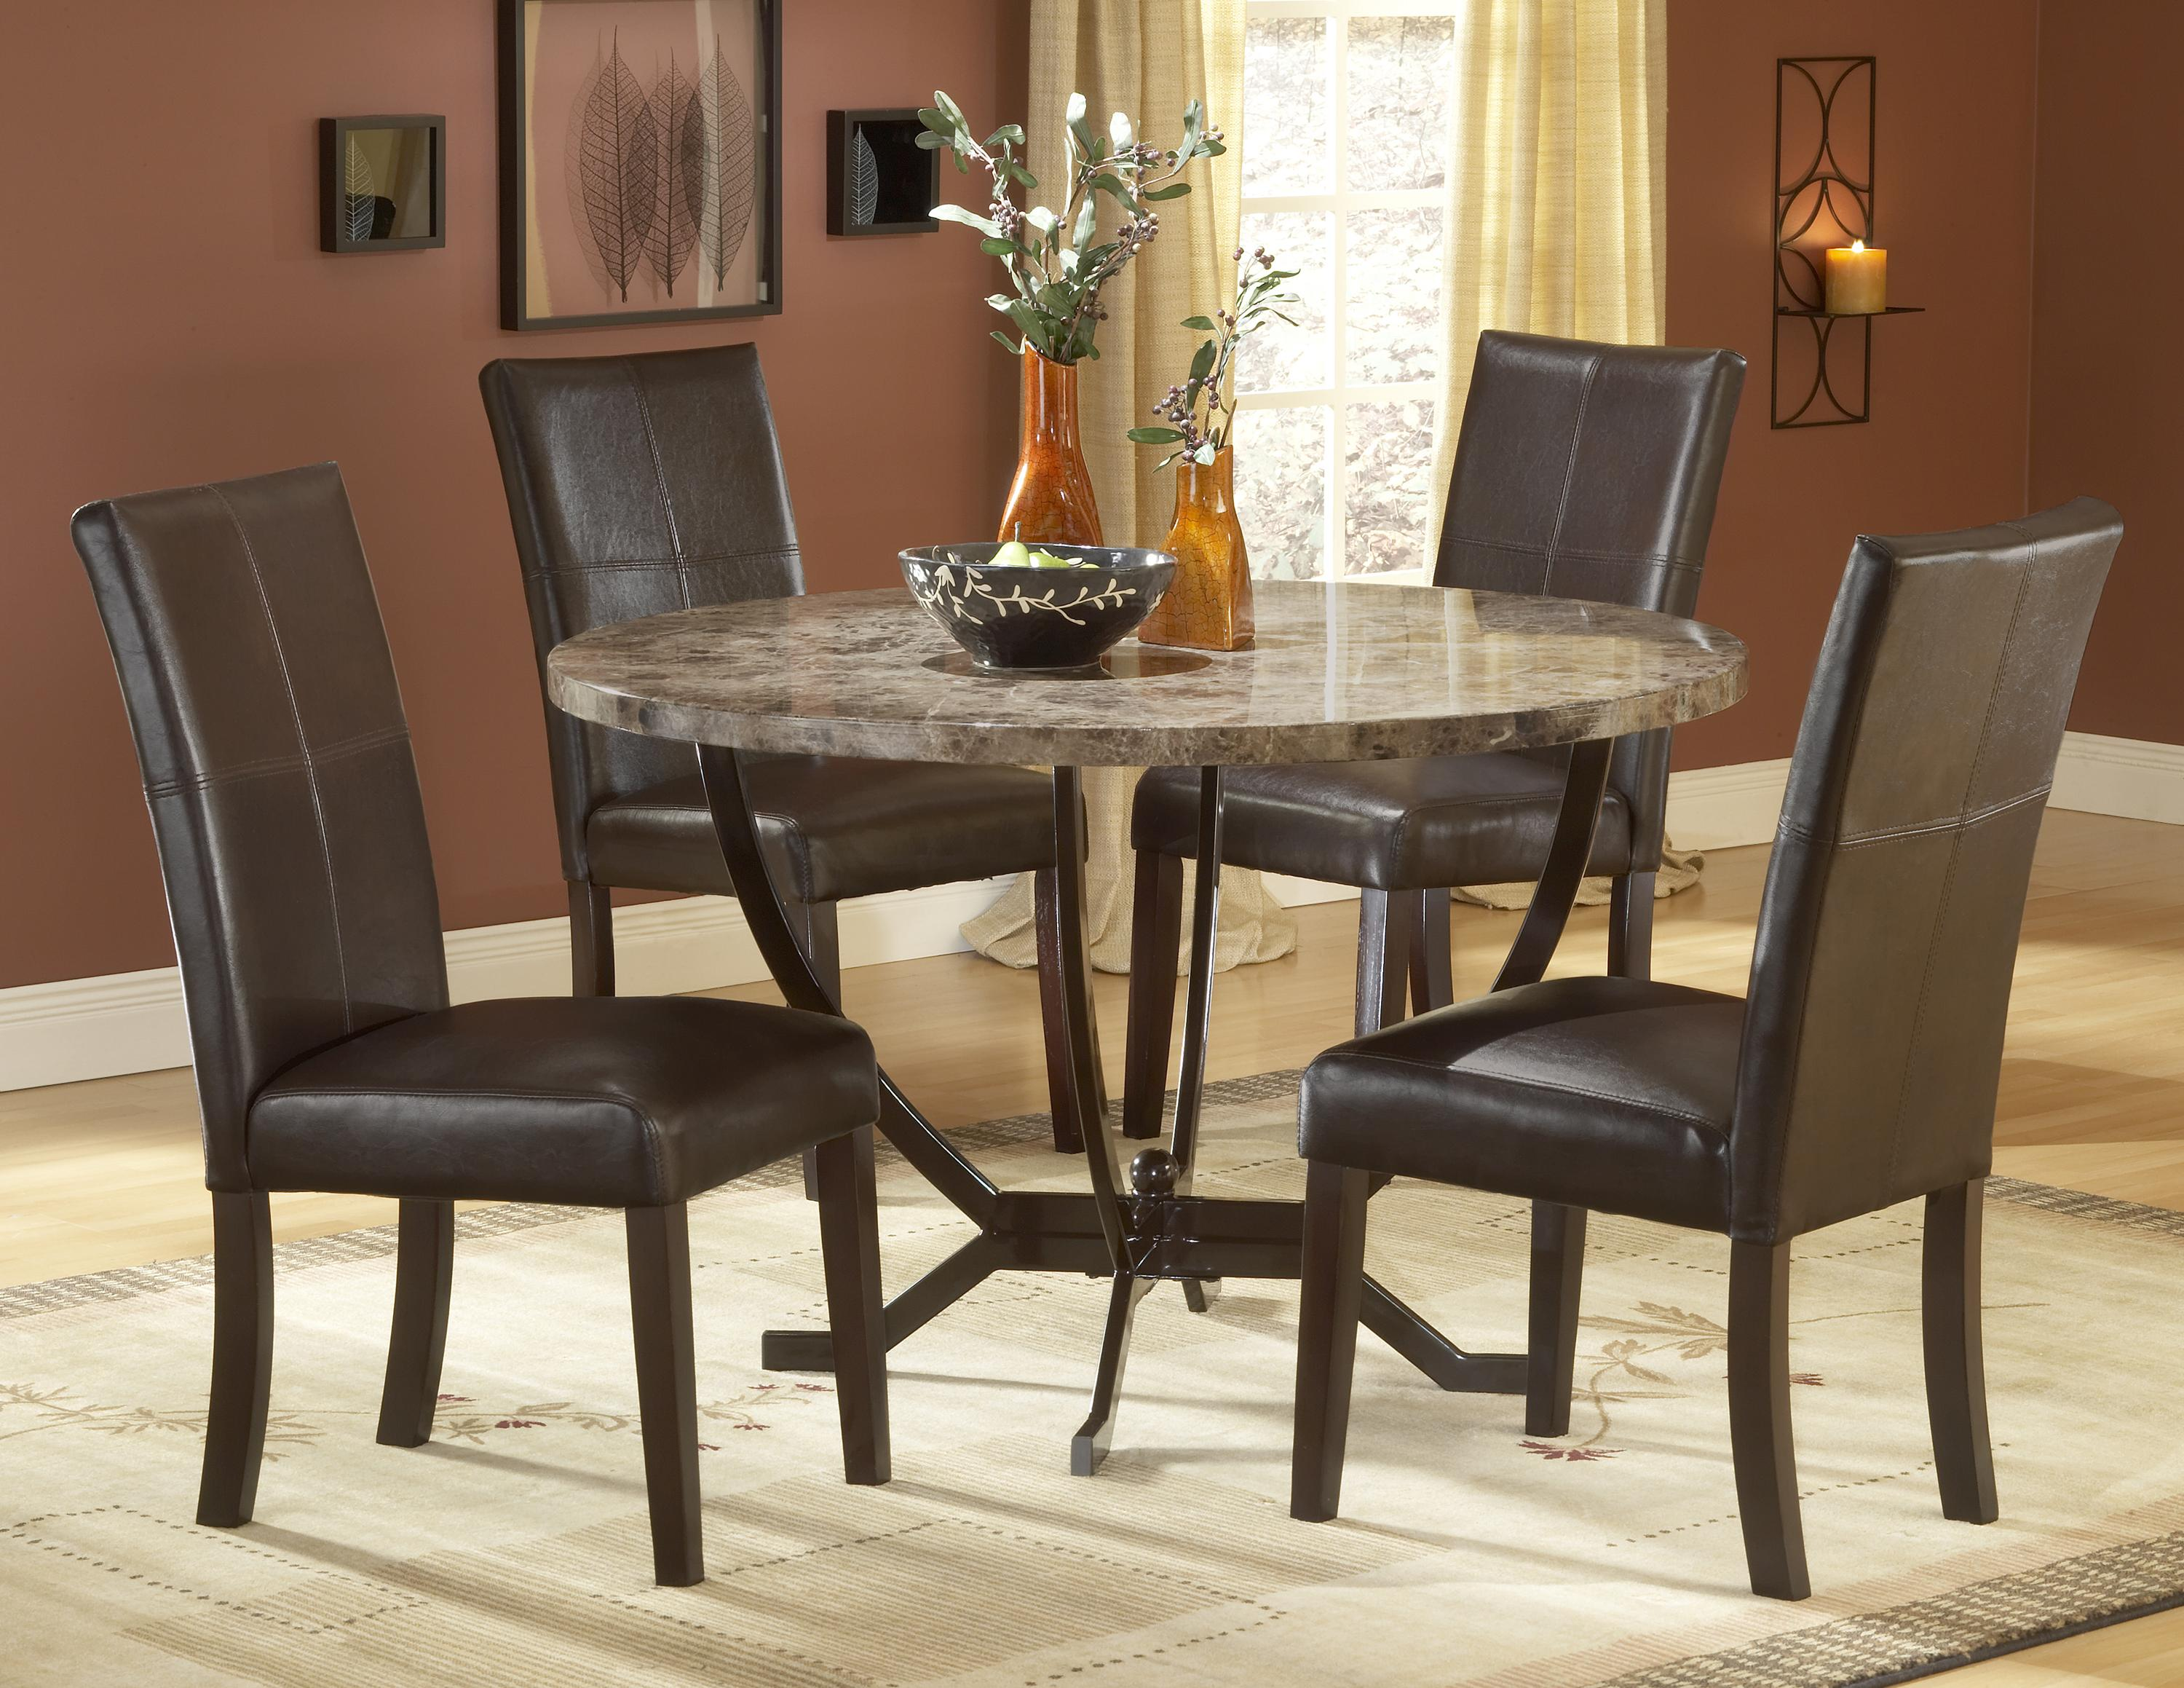 Small dinette set design homesfeed for Dinette sets